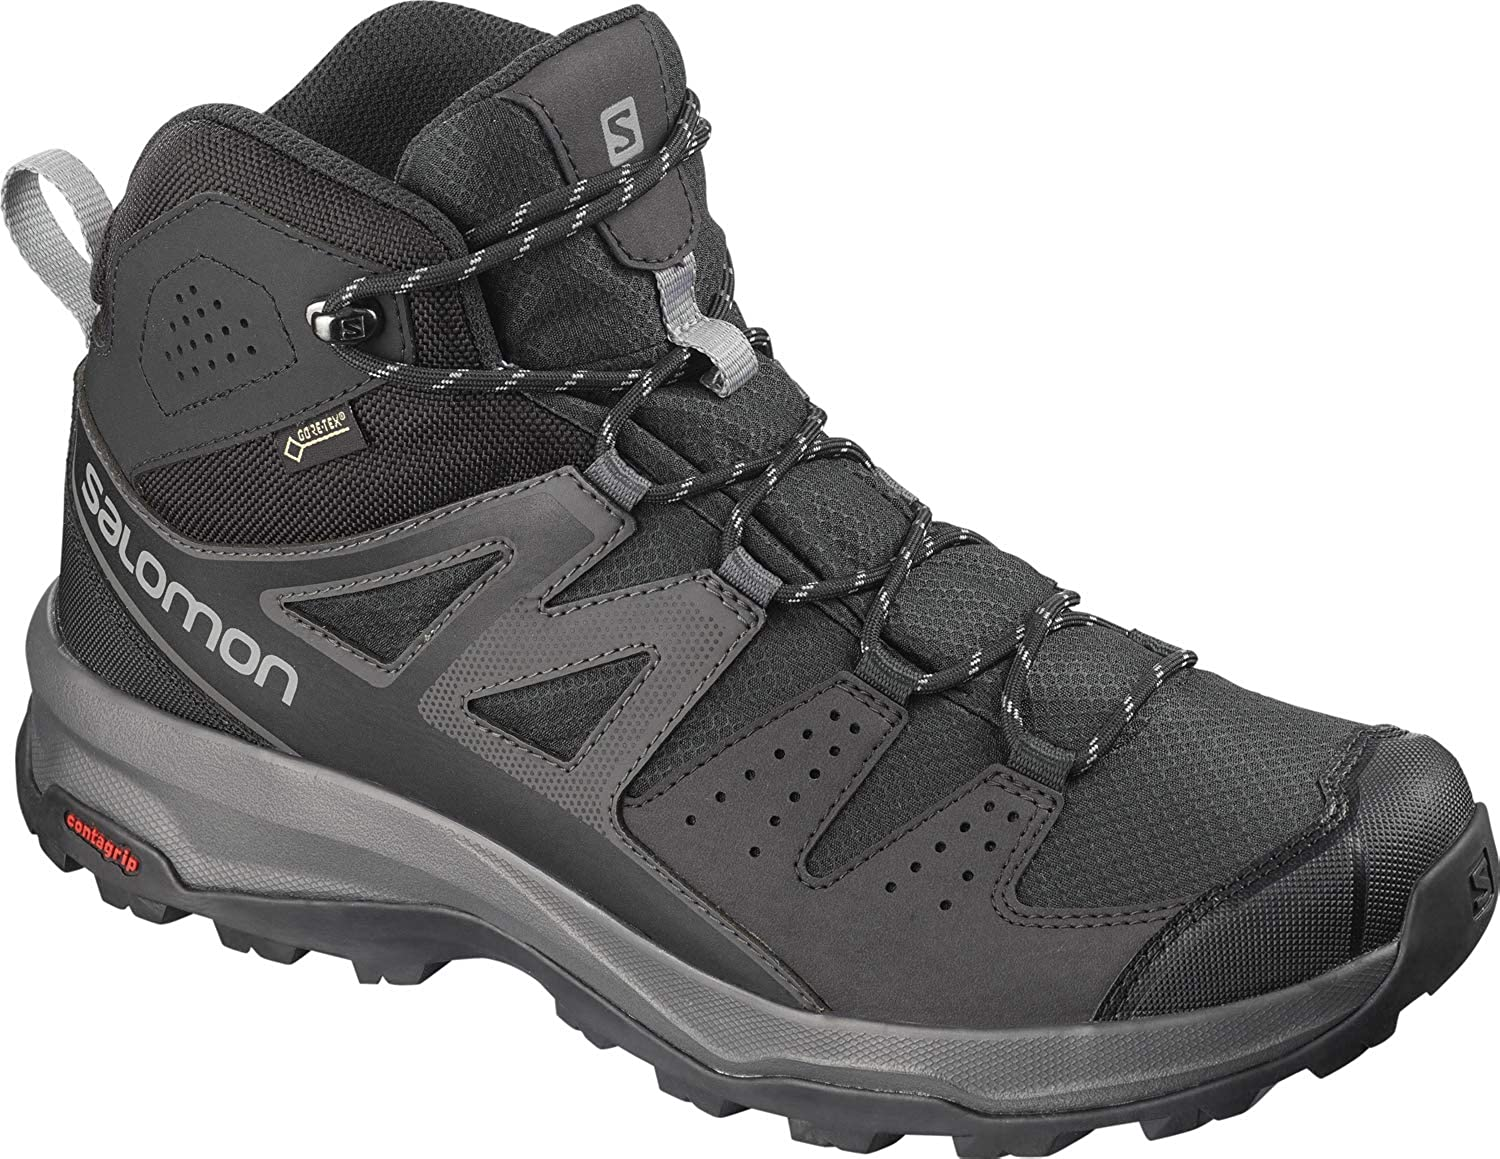 salomon men's x ultra 3 mid gtx shoe review leather kit